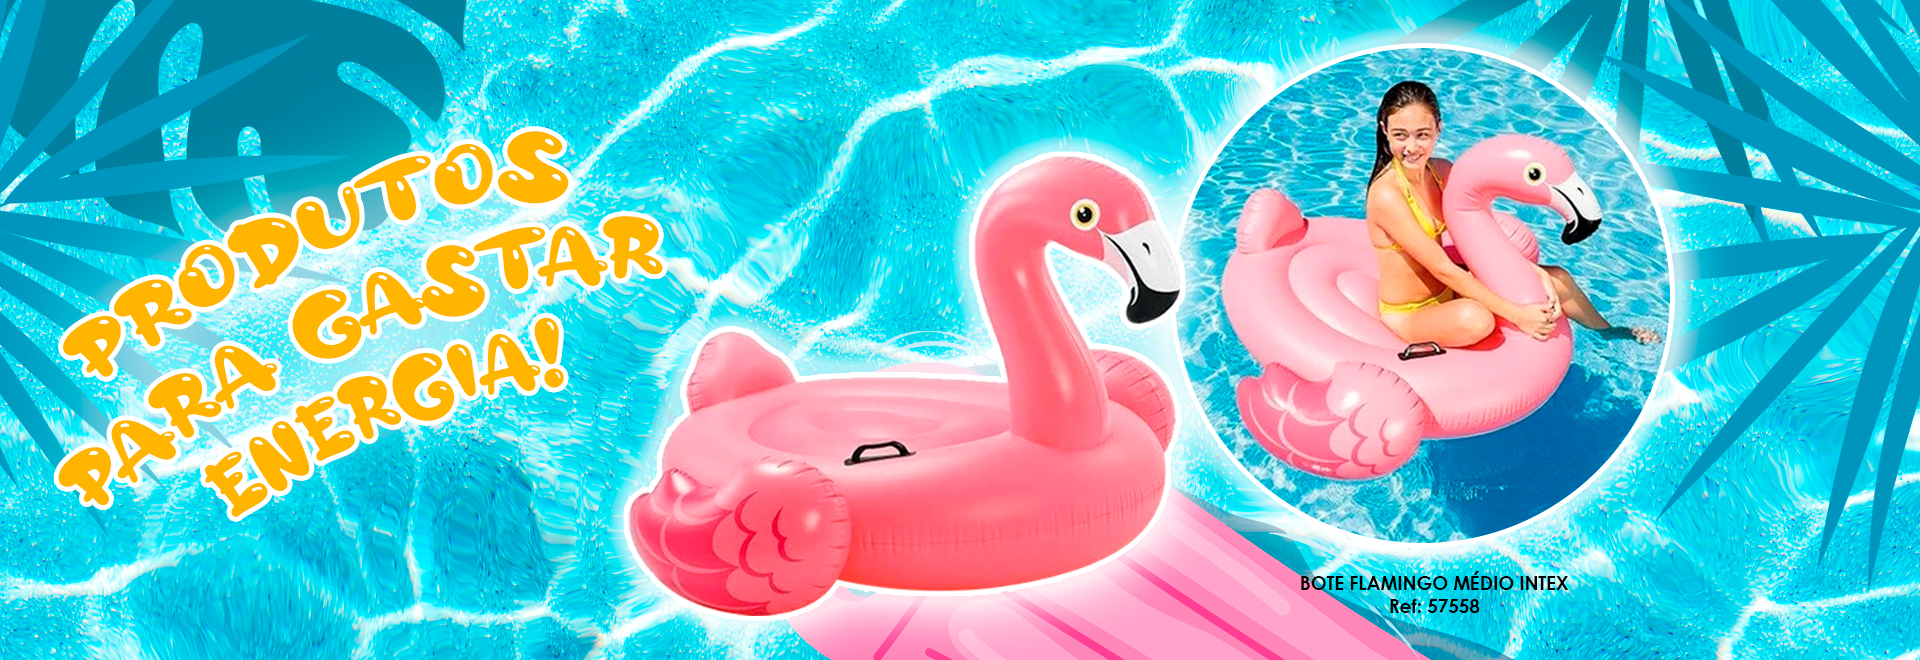 BOTE FLAMINGO 57558 INTEX